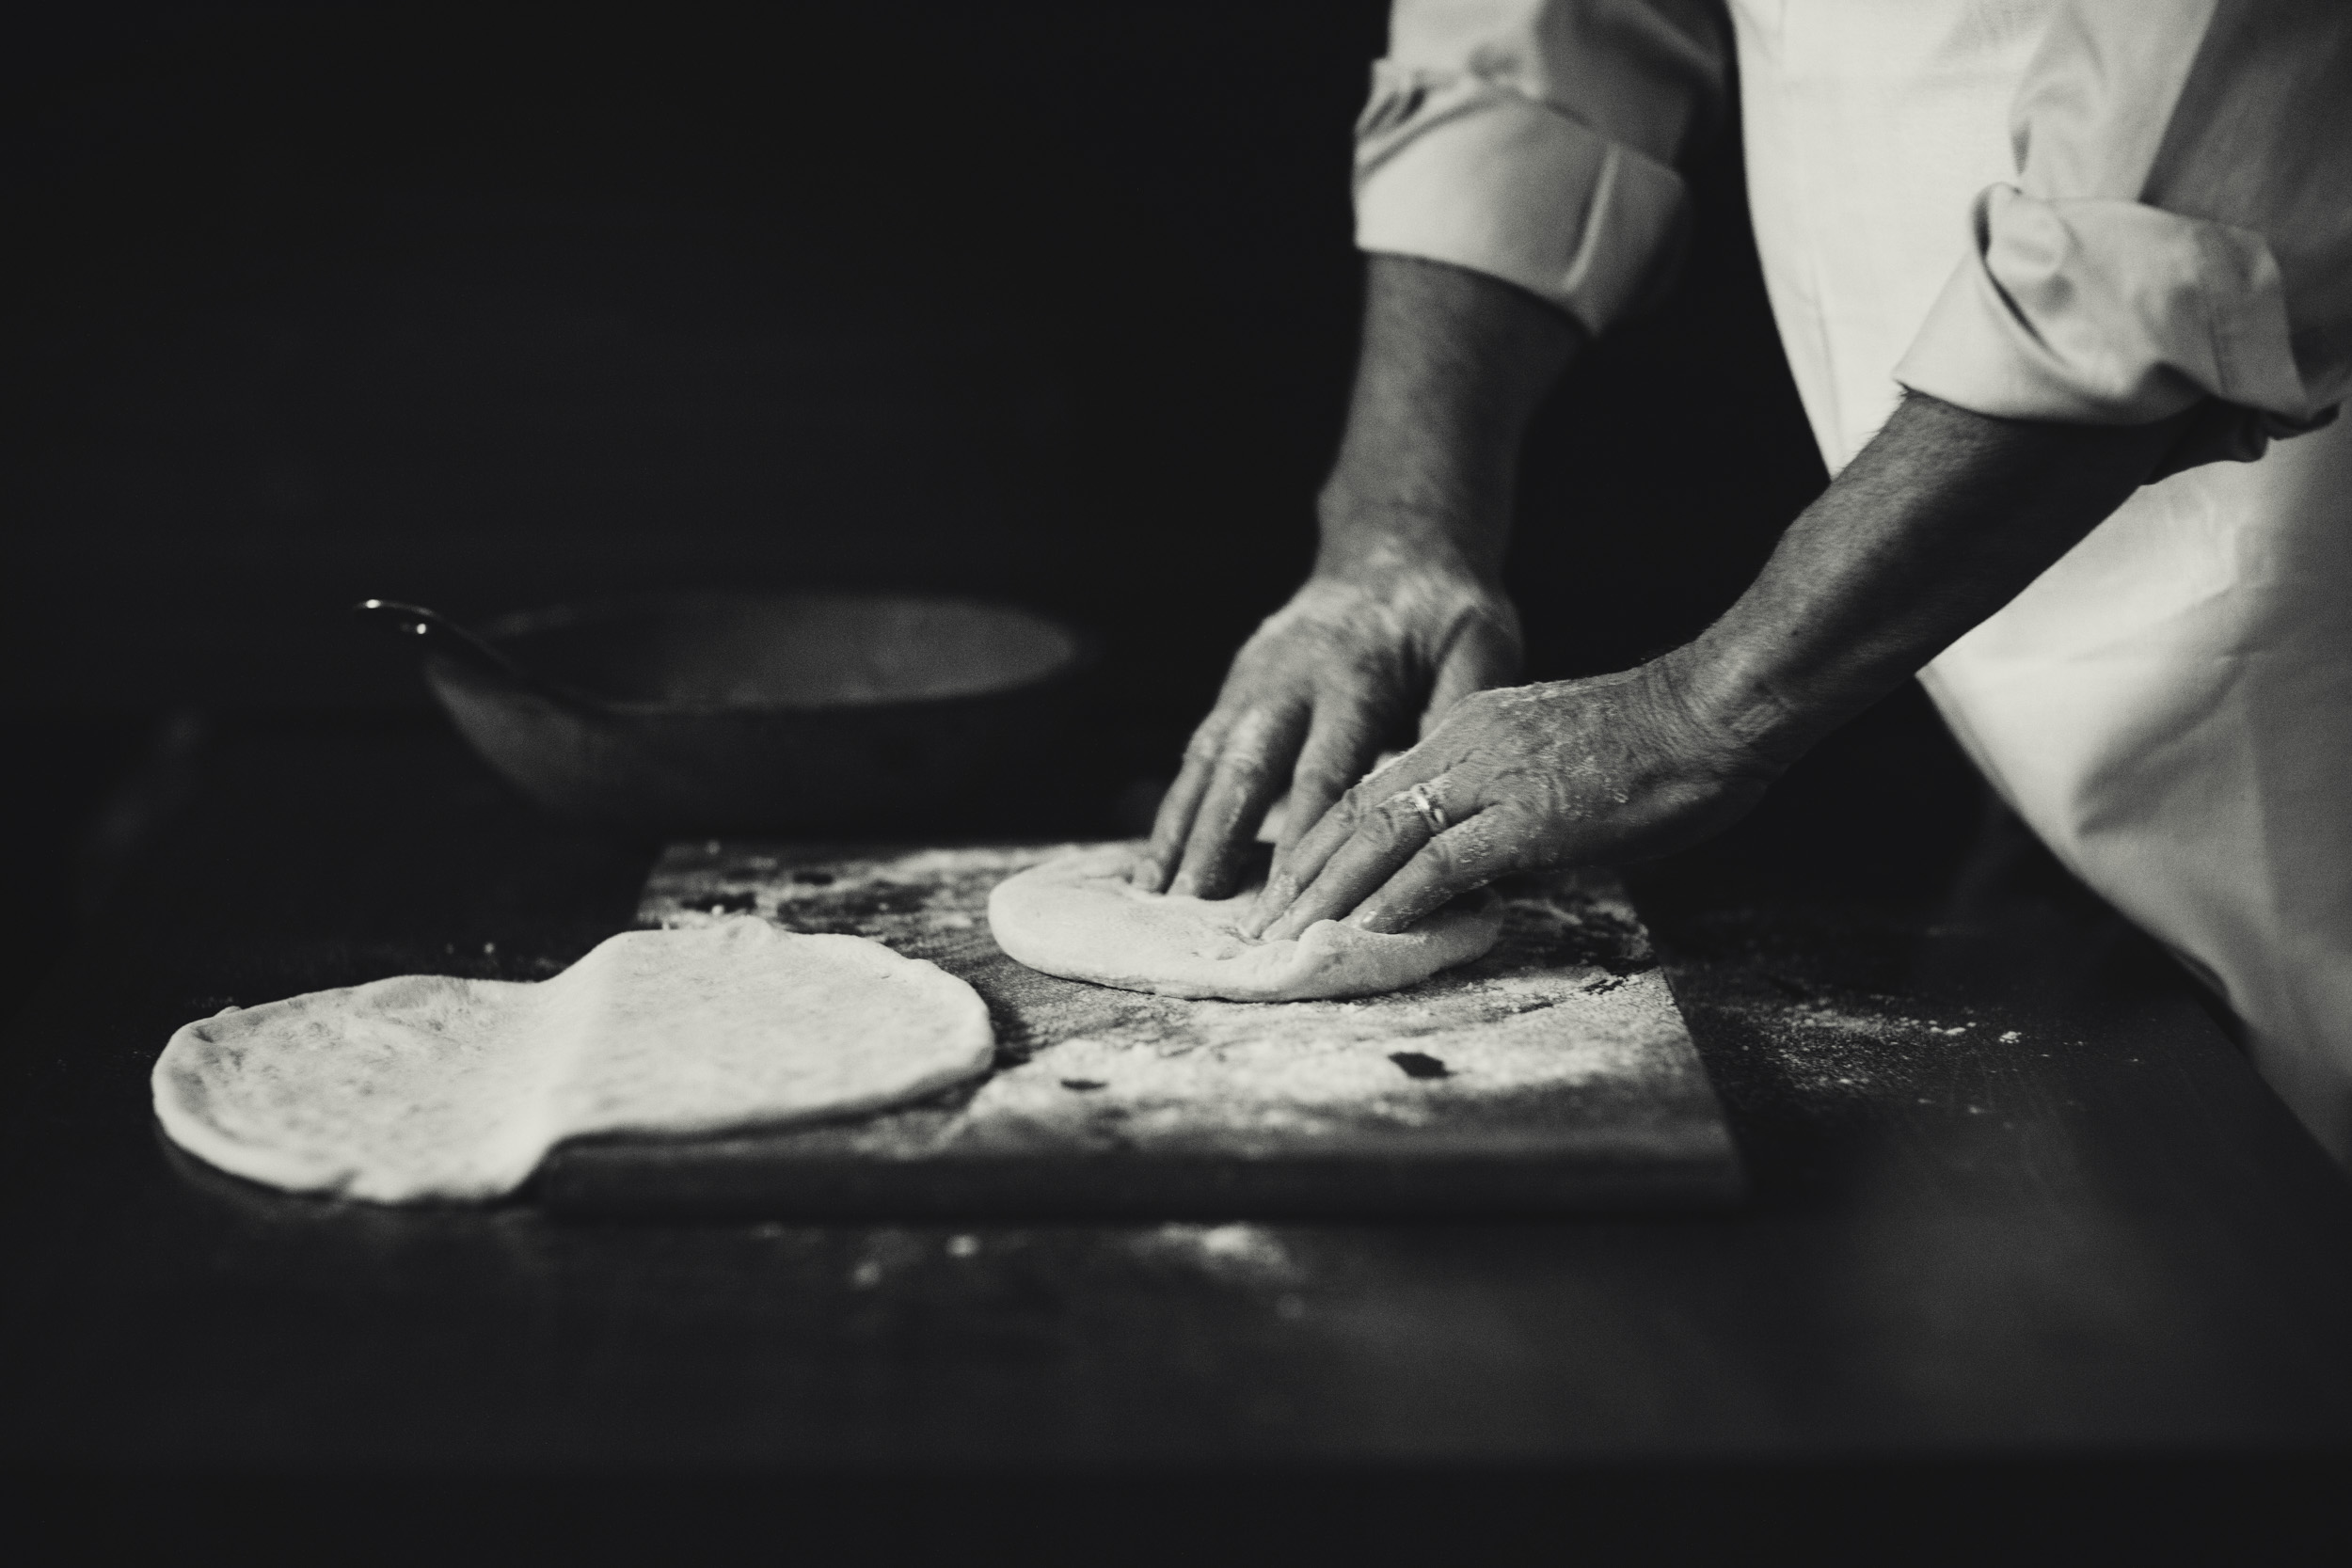 Hand tossed traditionalpizza dough